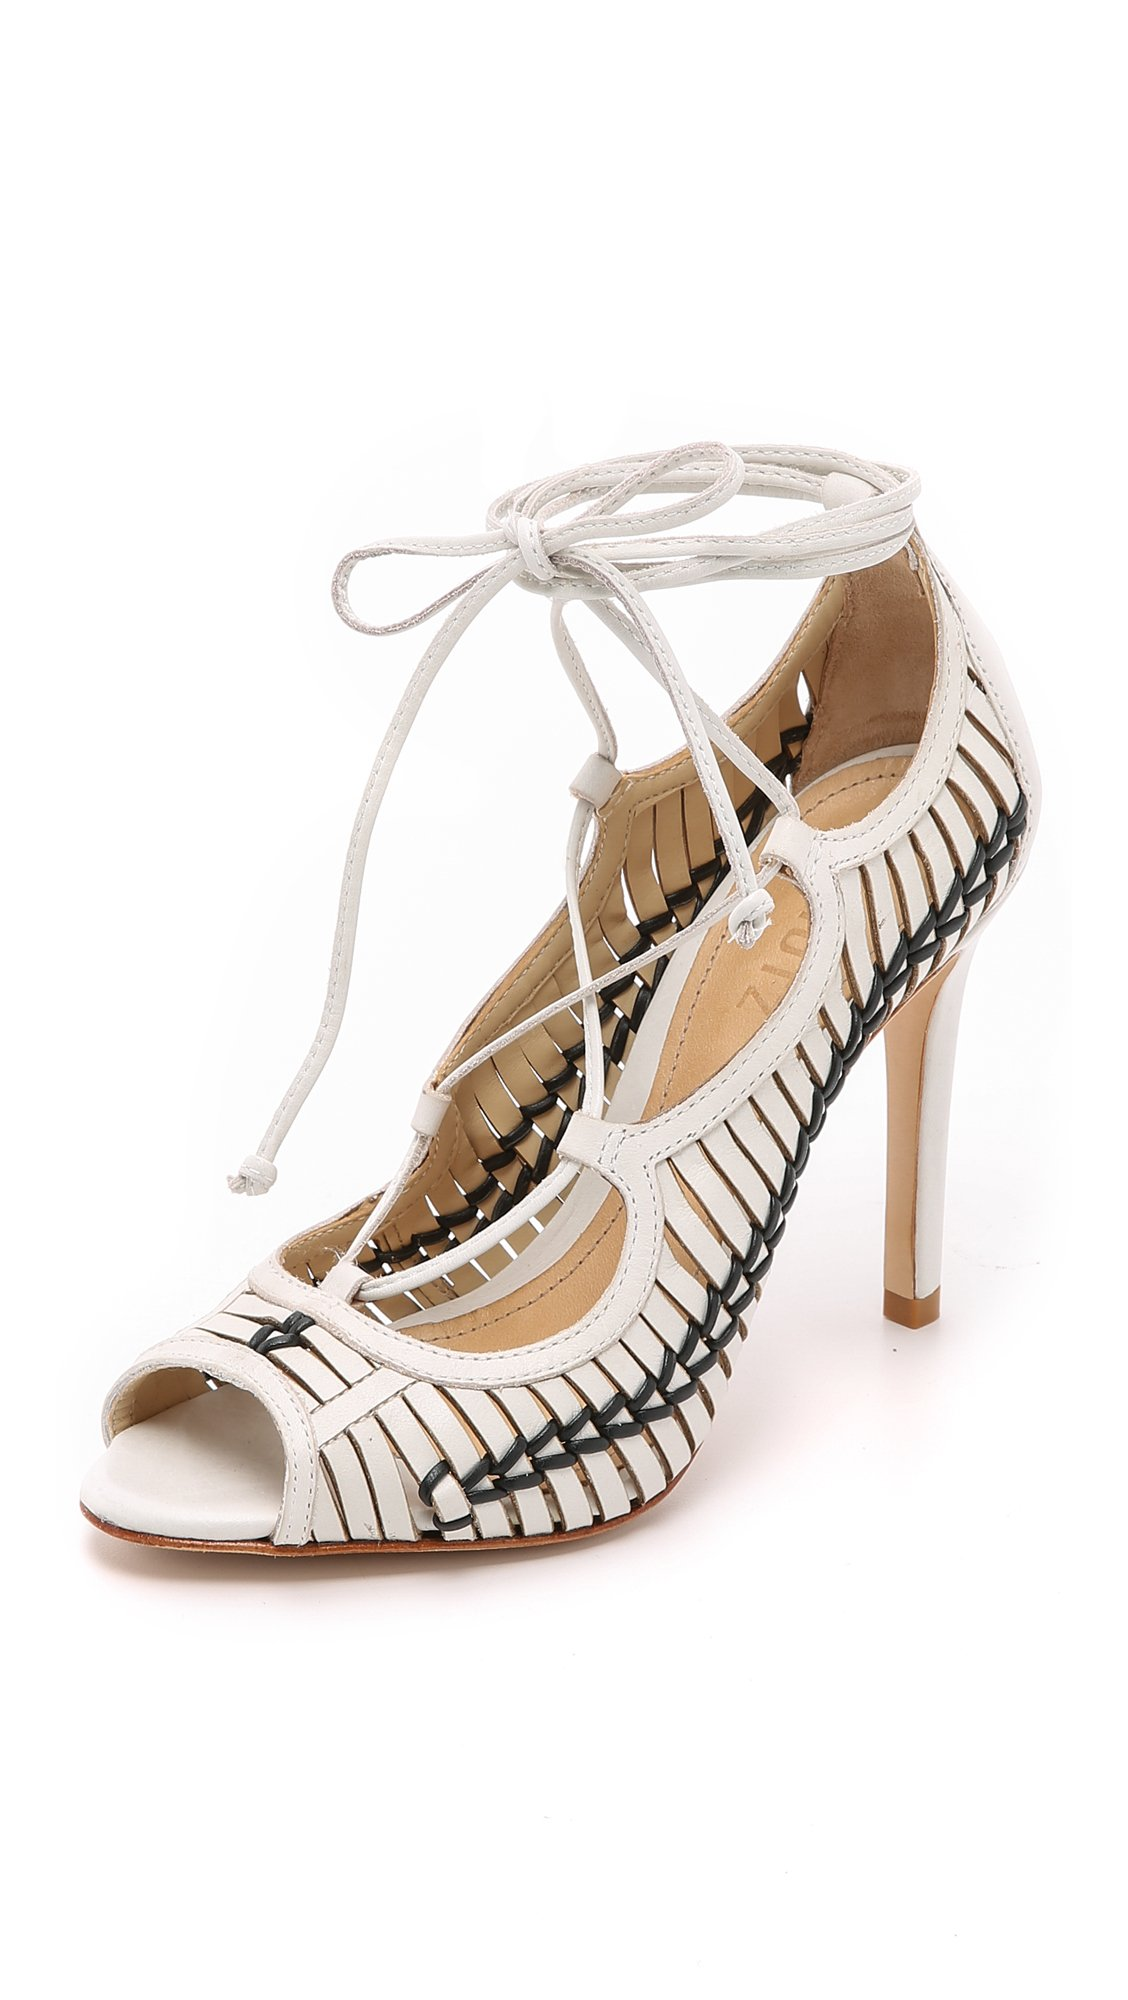 Schutz Mattie Lace Up Sandals Pearl Black In White Lyst